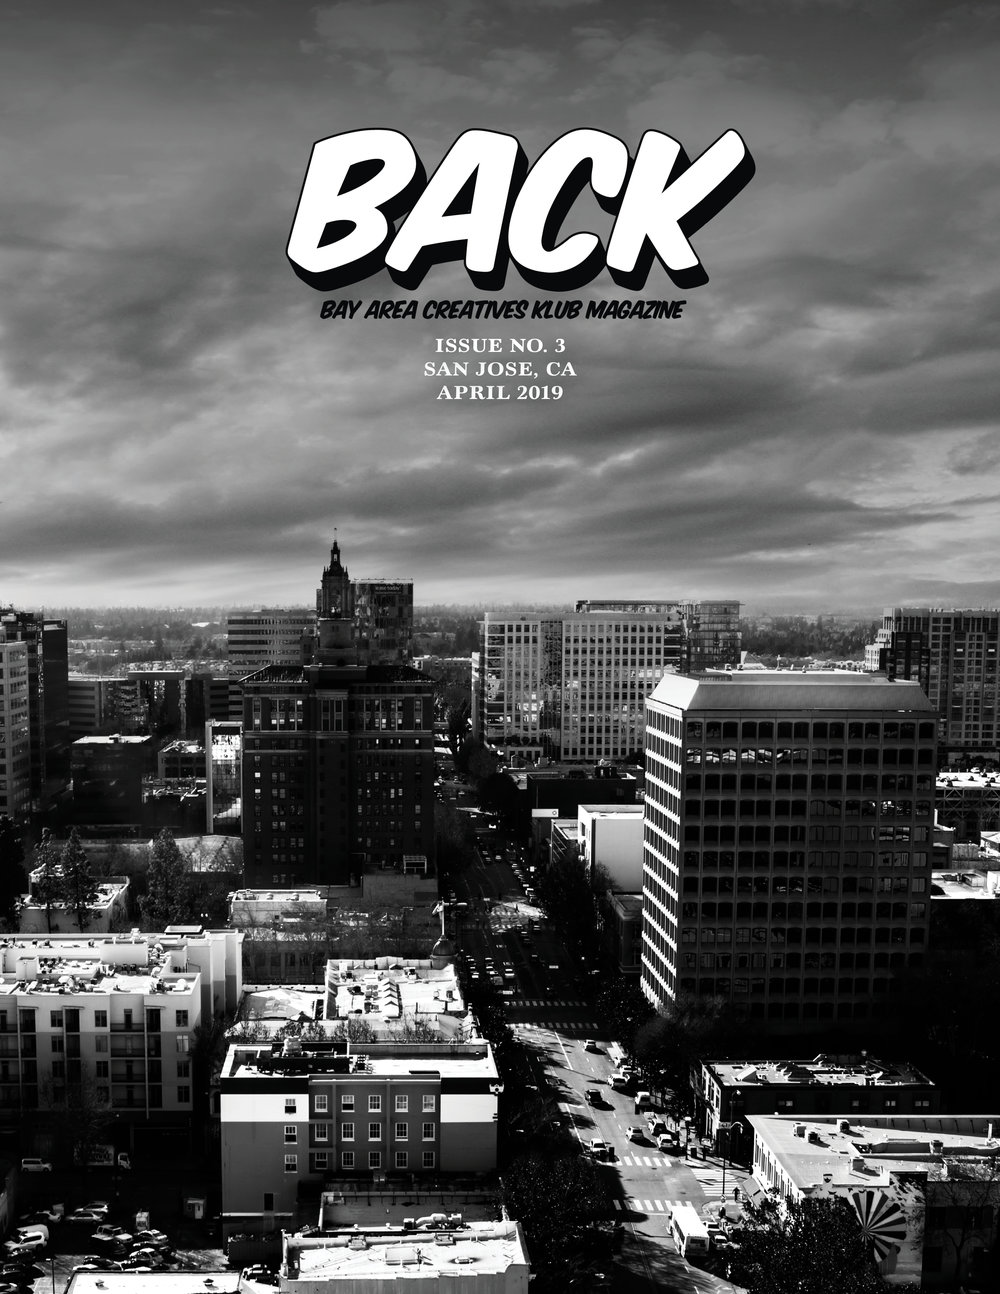 The Last Issue of BACK Magazine - Issue No. 3- The San Jose Edition- will be released at The Third Annual San Jose Day.See who's featured in Issue No. 3 HERE.